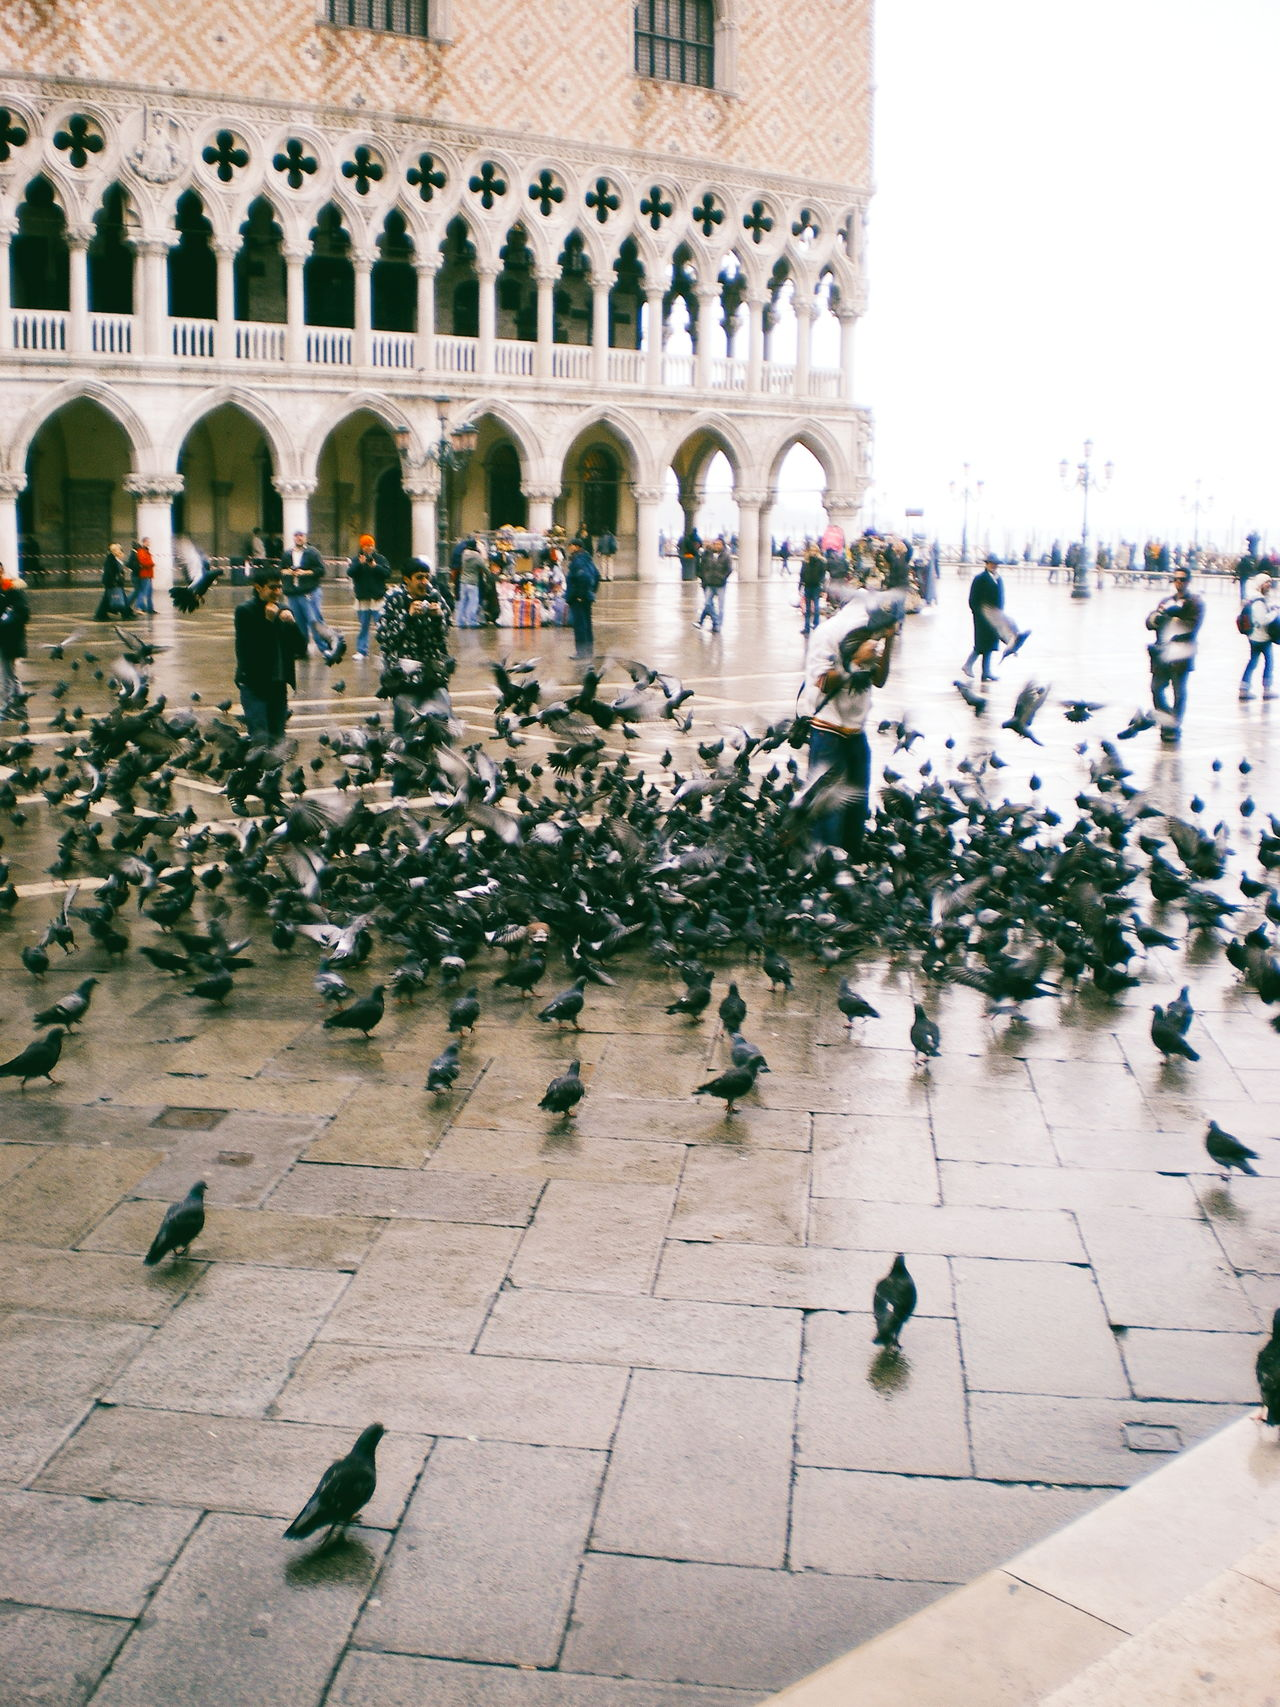 Throwback to the great massacre in Venice. Travel Destinations Travel Wanderlust My Year My View EyeEm Best Shots EyeEm Italy Italia Venice, Italy Pentax Architecture Birds